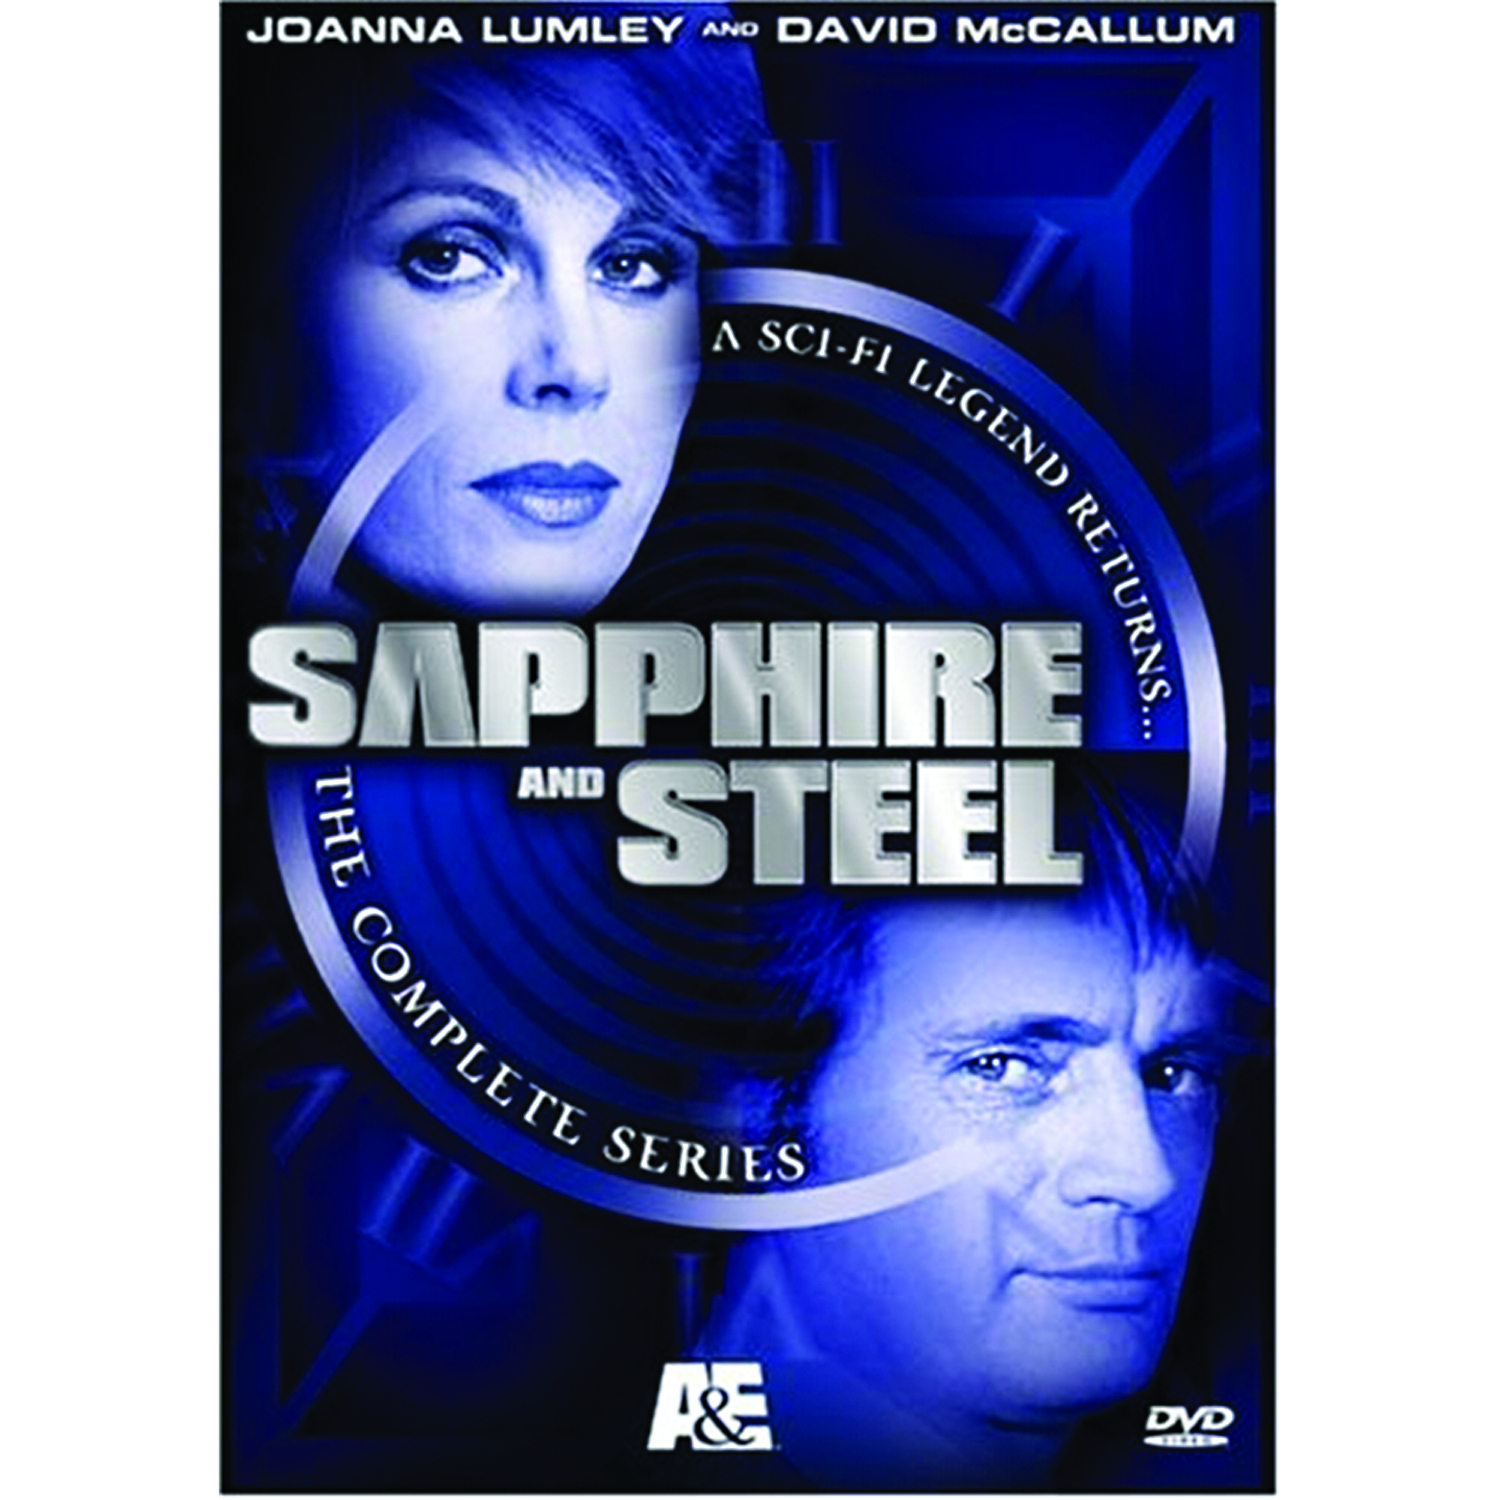 SAPPHIRE AND STEEL COMP SER DVD